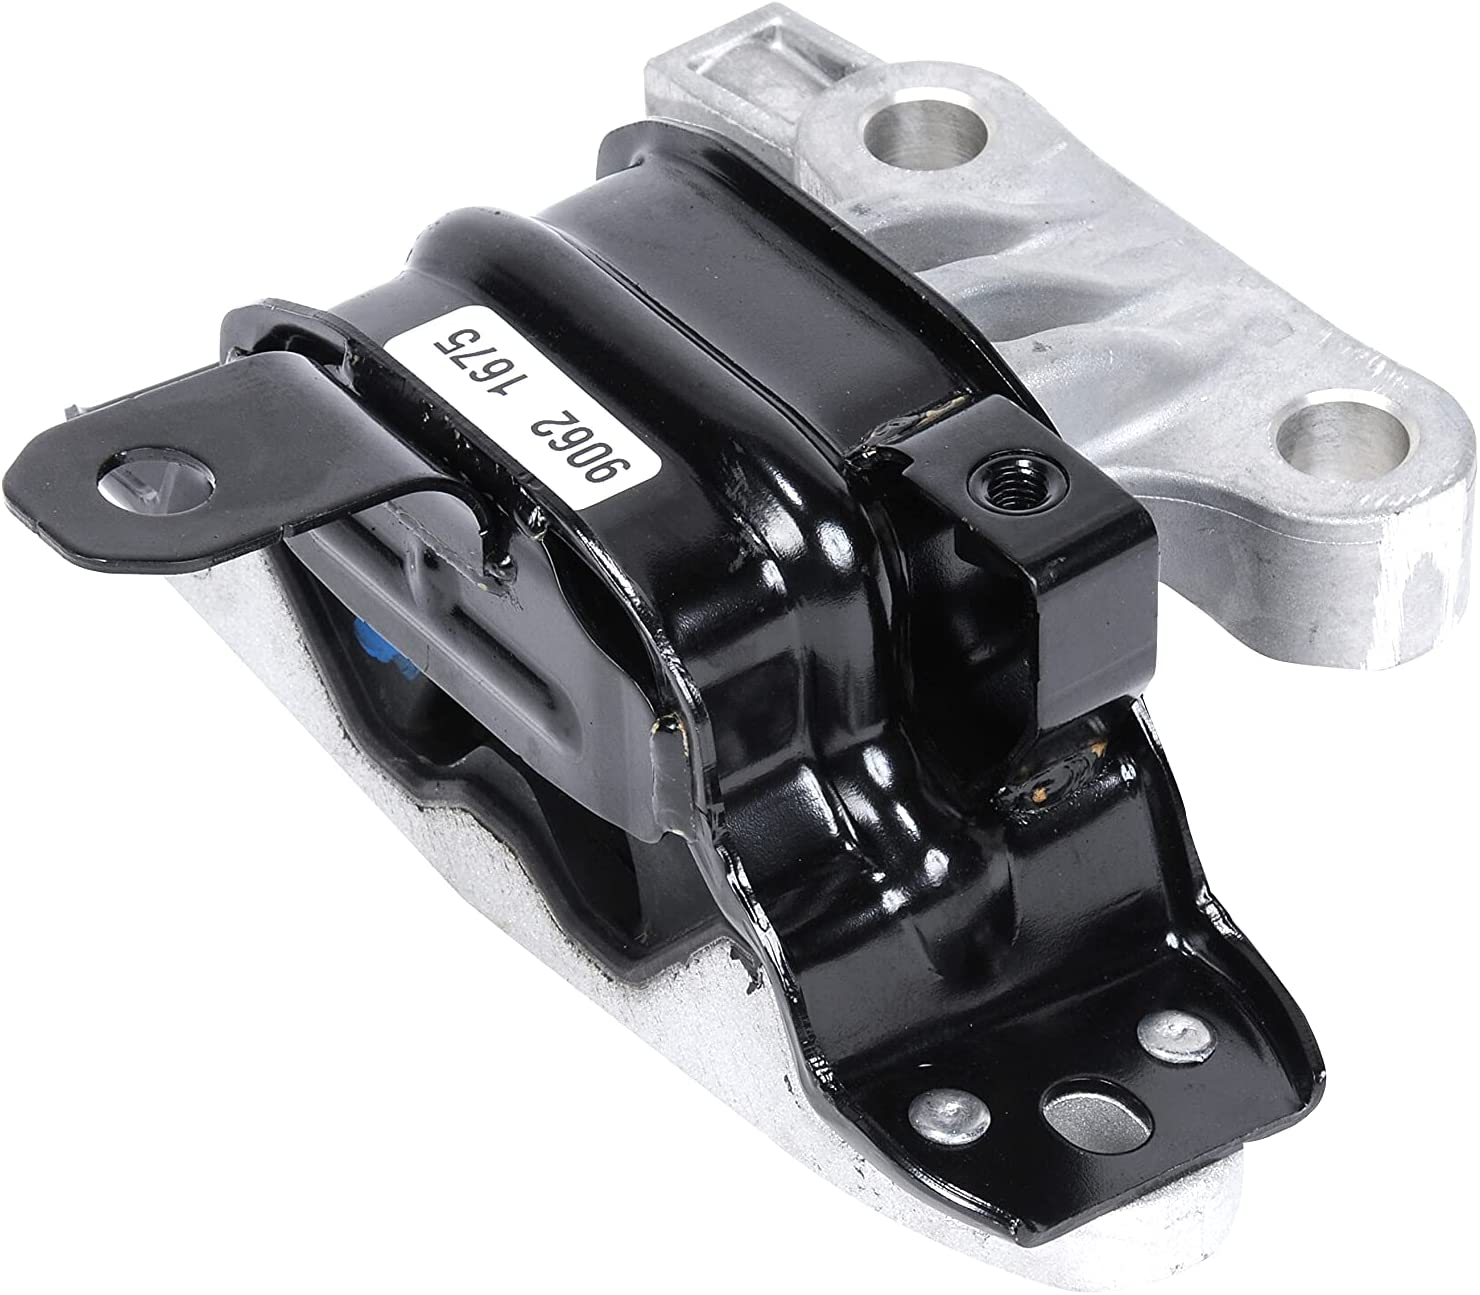 ACDelco GM Original Max 89% OFF Equipment 95239062 Ranking TOP2 Manual Transmission Mount